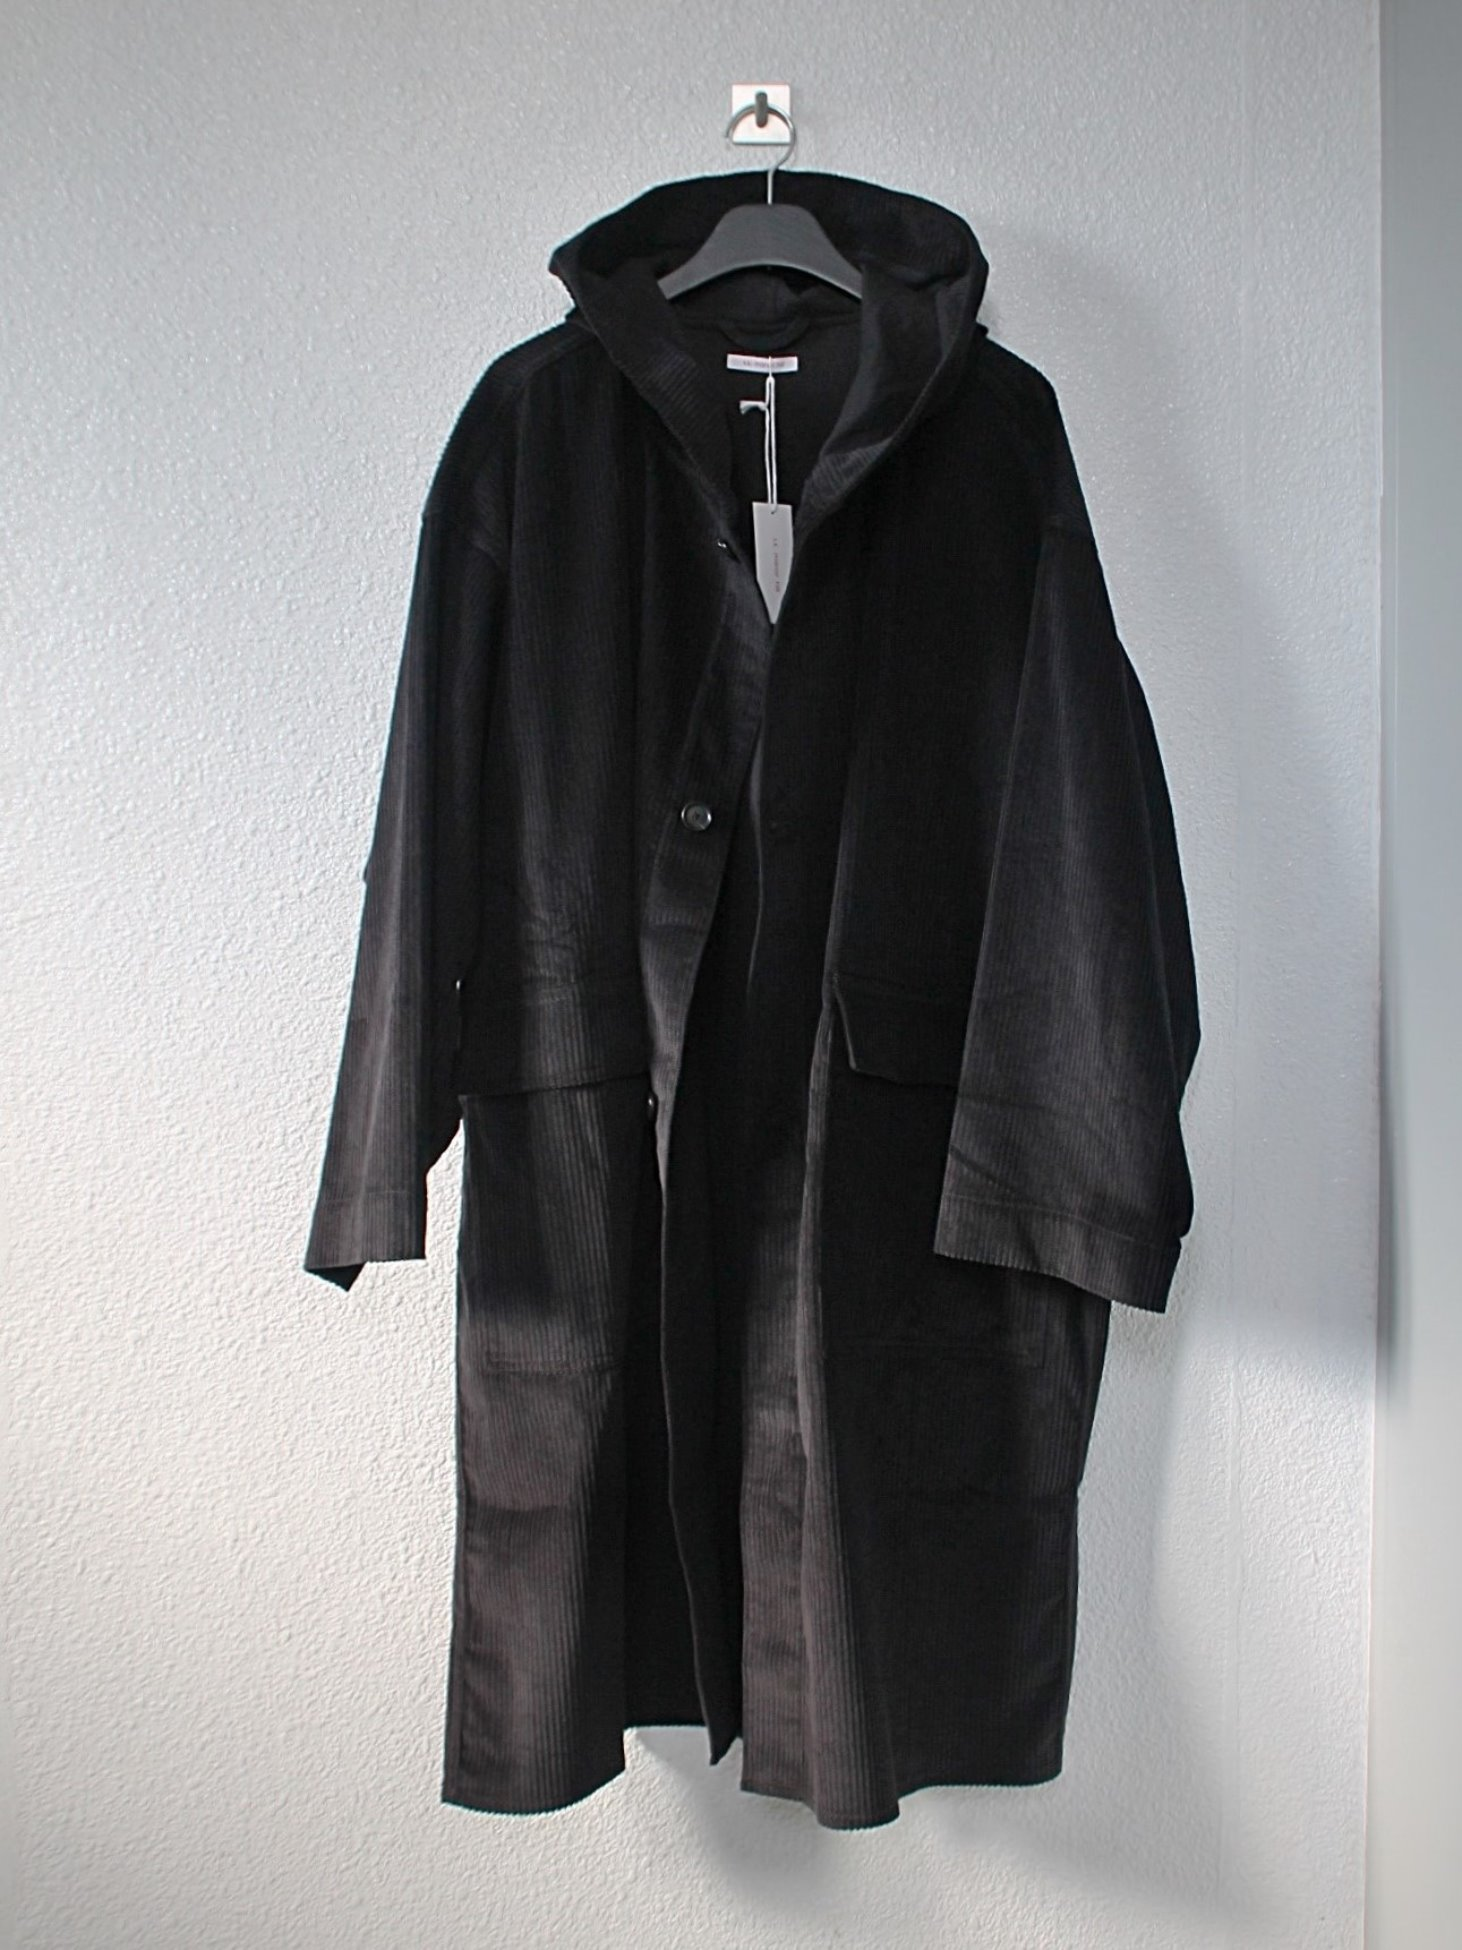 [s.k. manor hill] Hooded Canopy Coat - Black Corduroy